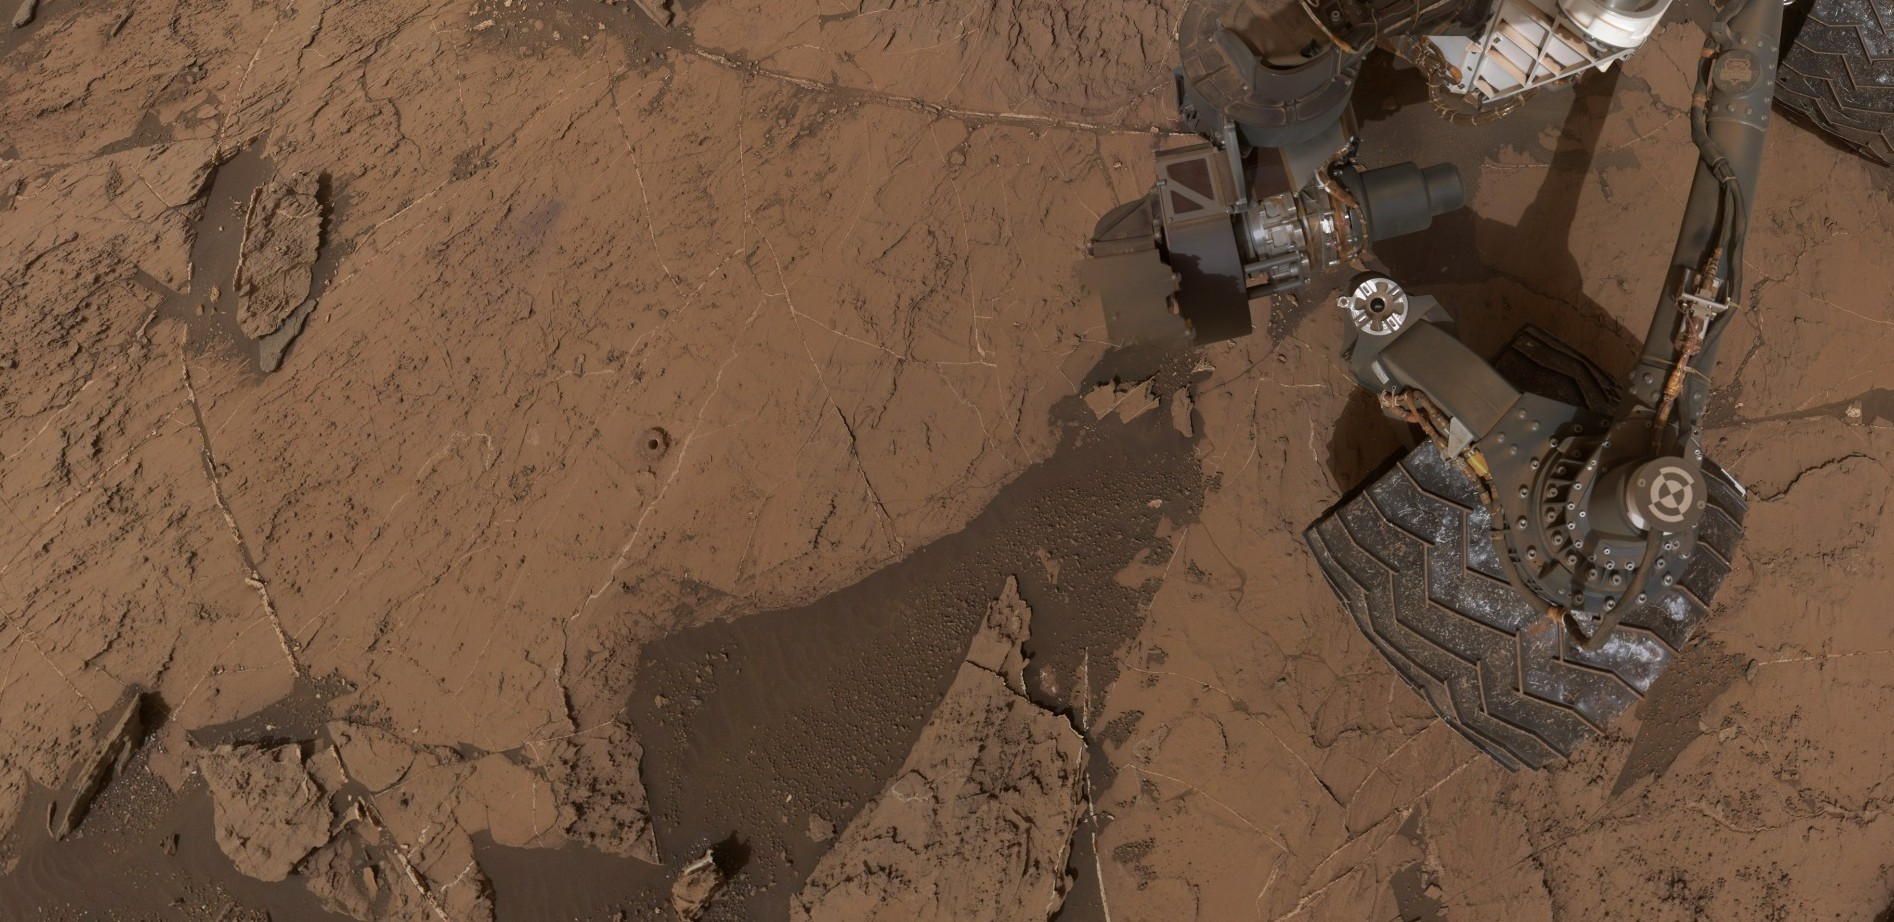 msl-curiosity-murray-buttes-selfie-pia20844-detail-7